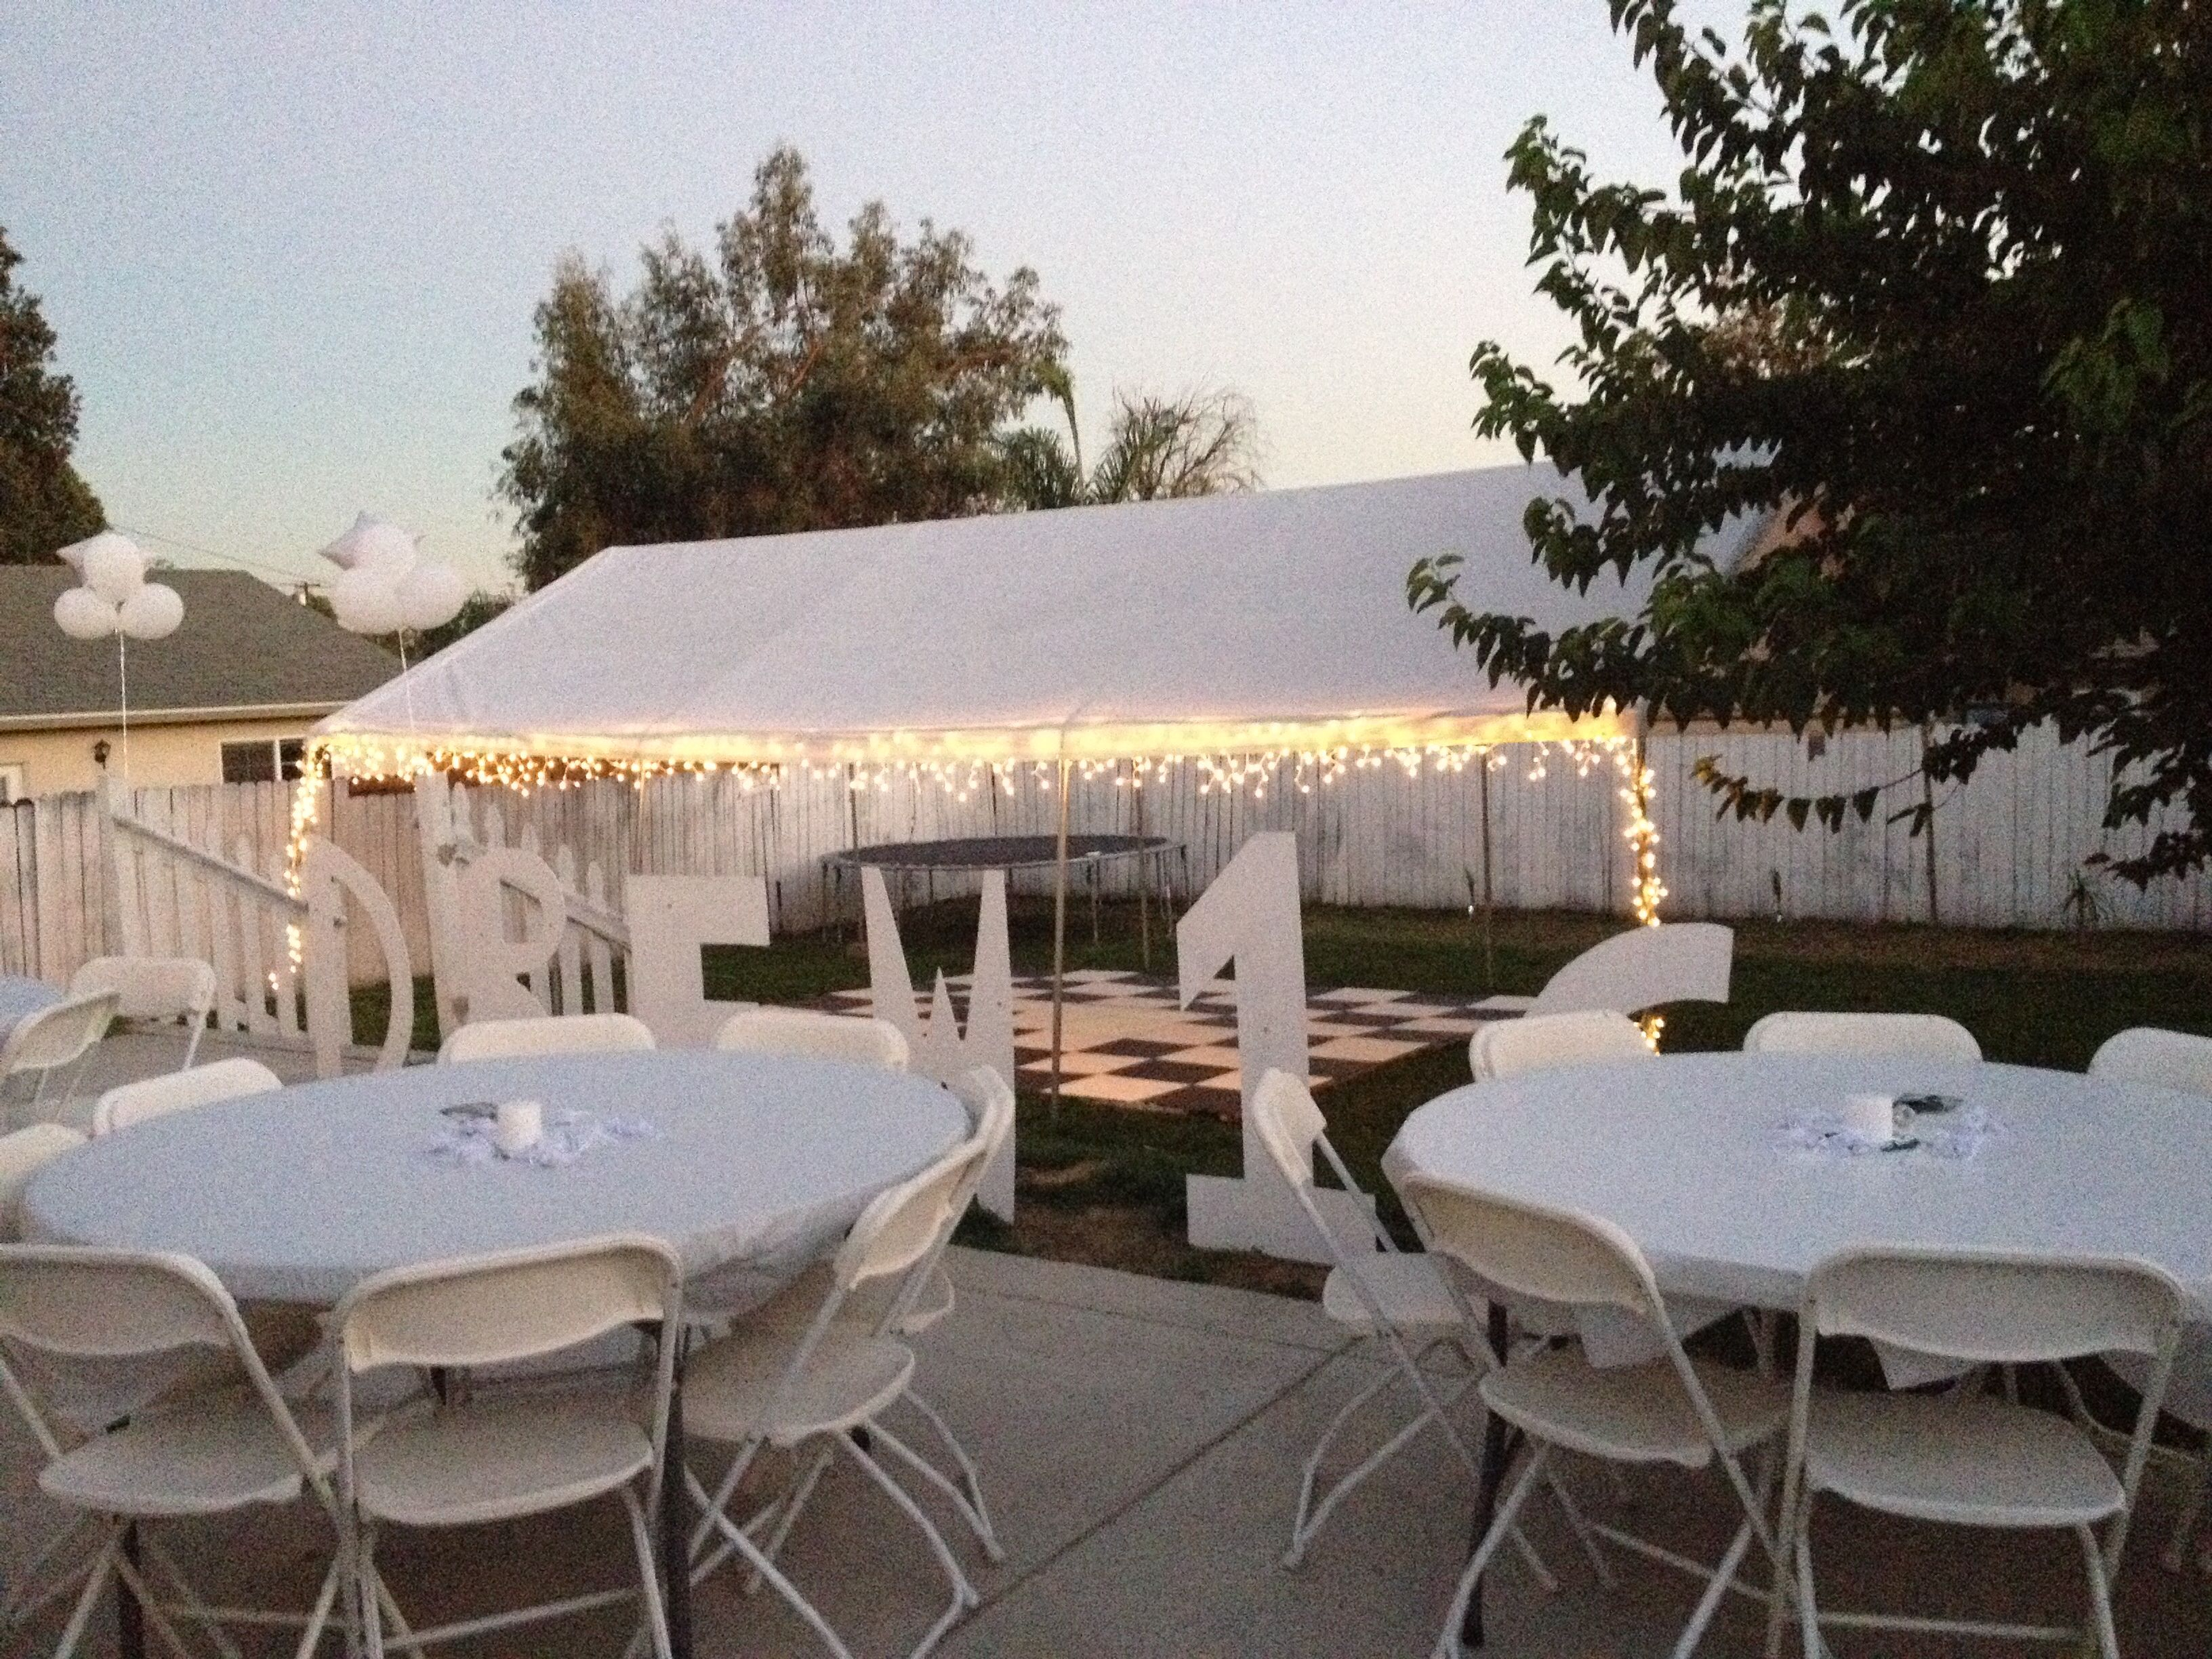 All White Party Backyard Set Up Sweet 16 All White Party All in 10 Smart Ideas How to Makeover Ideas For Backyard Party